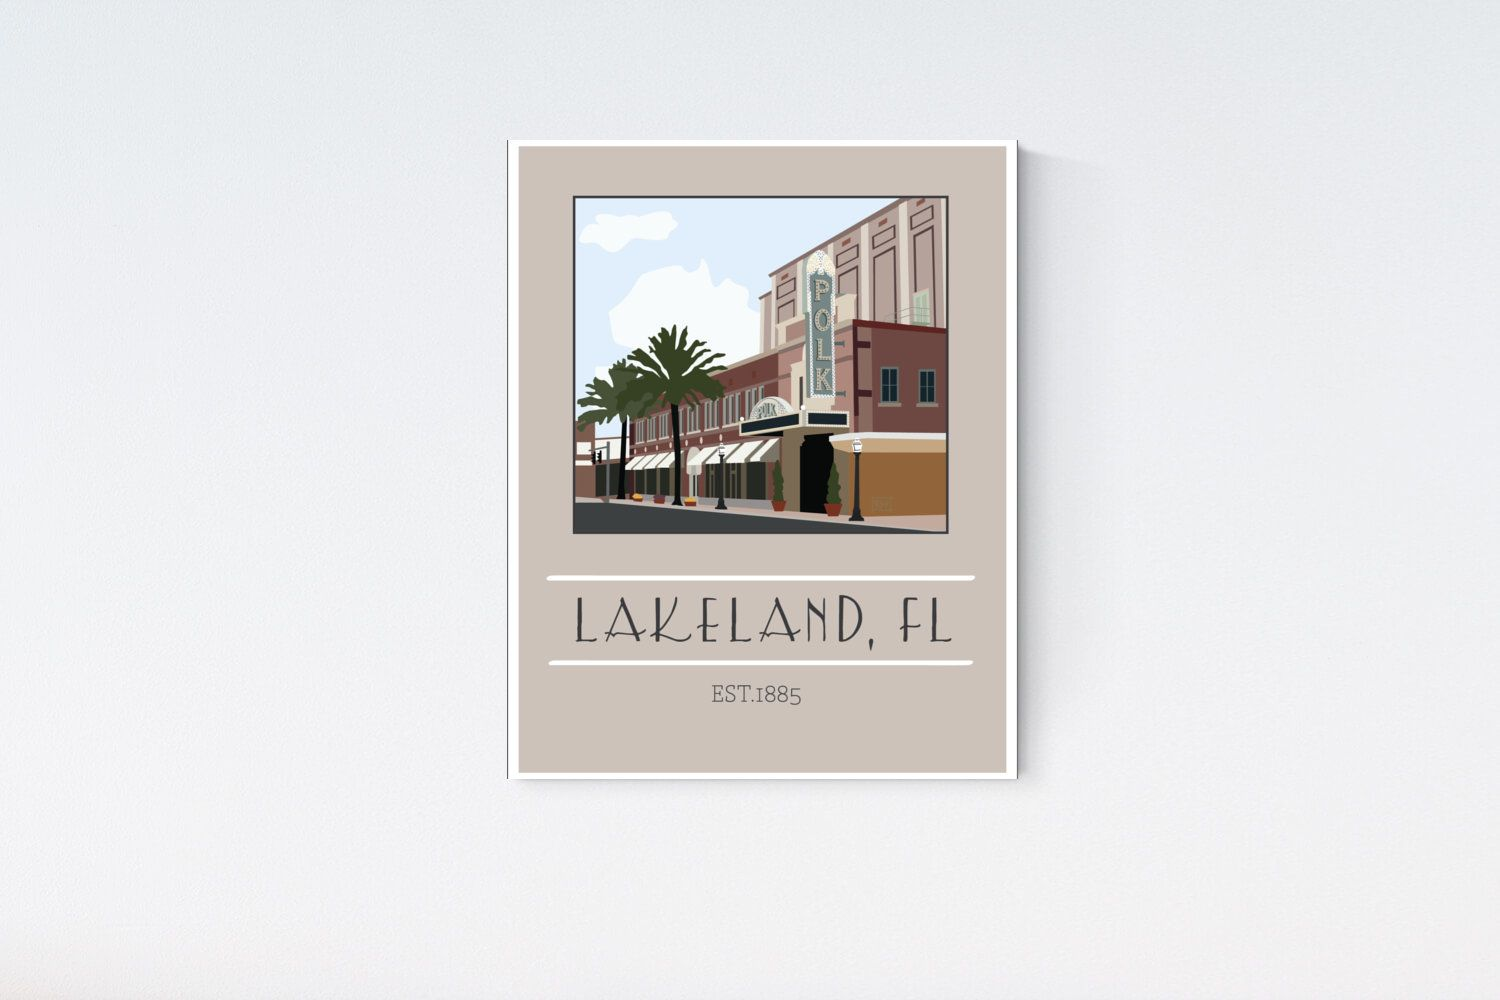 Polk Theatre Lakeland Landmark Lakeland Downtown Lakeland Florida 11x14 Mockingbirdartist In 2020 Lakeland Lakeland Florida Polk